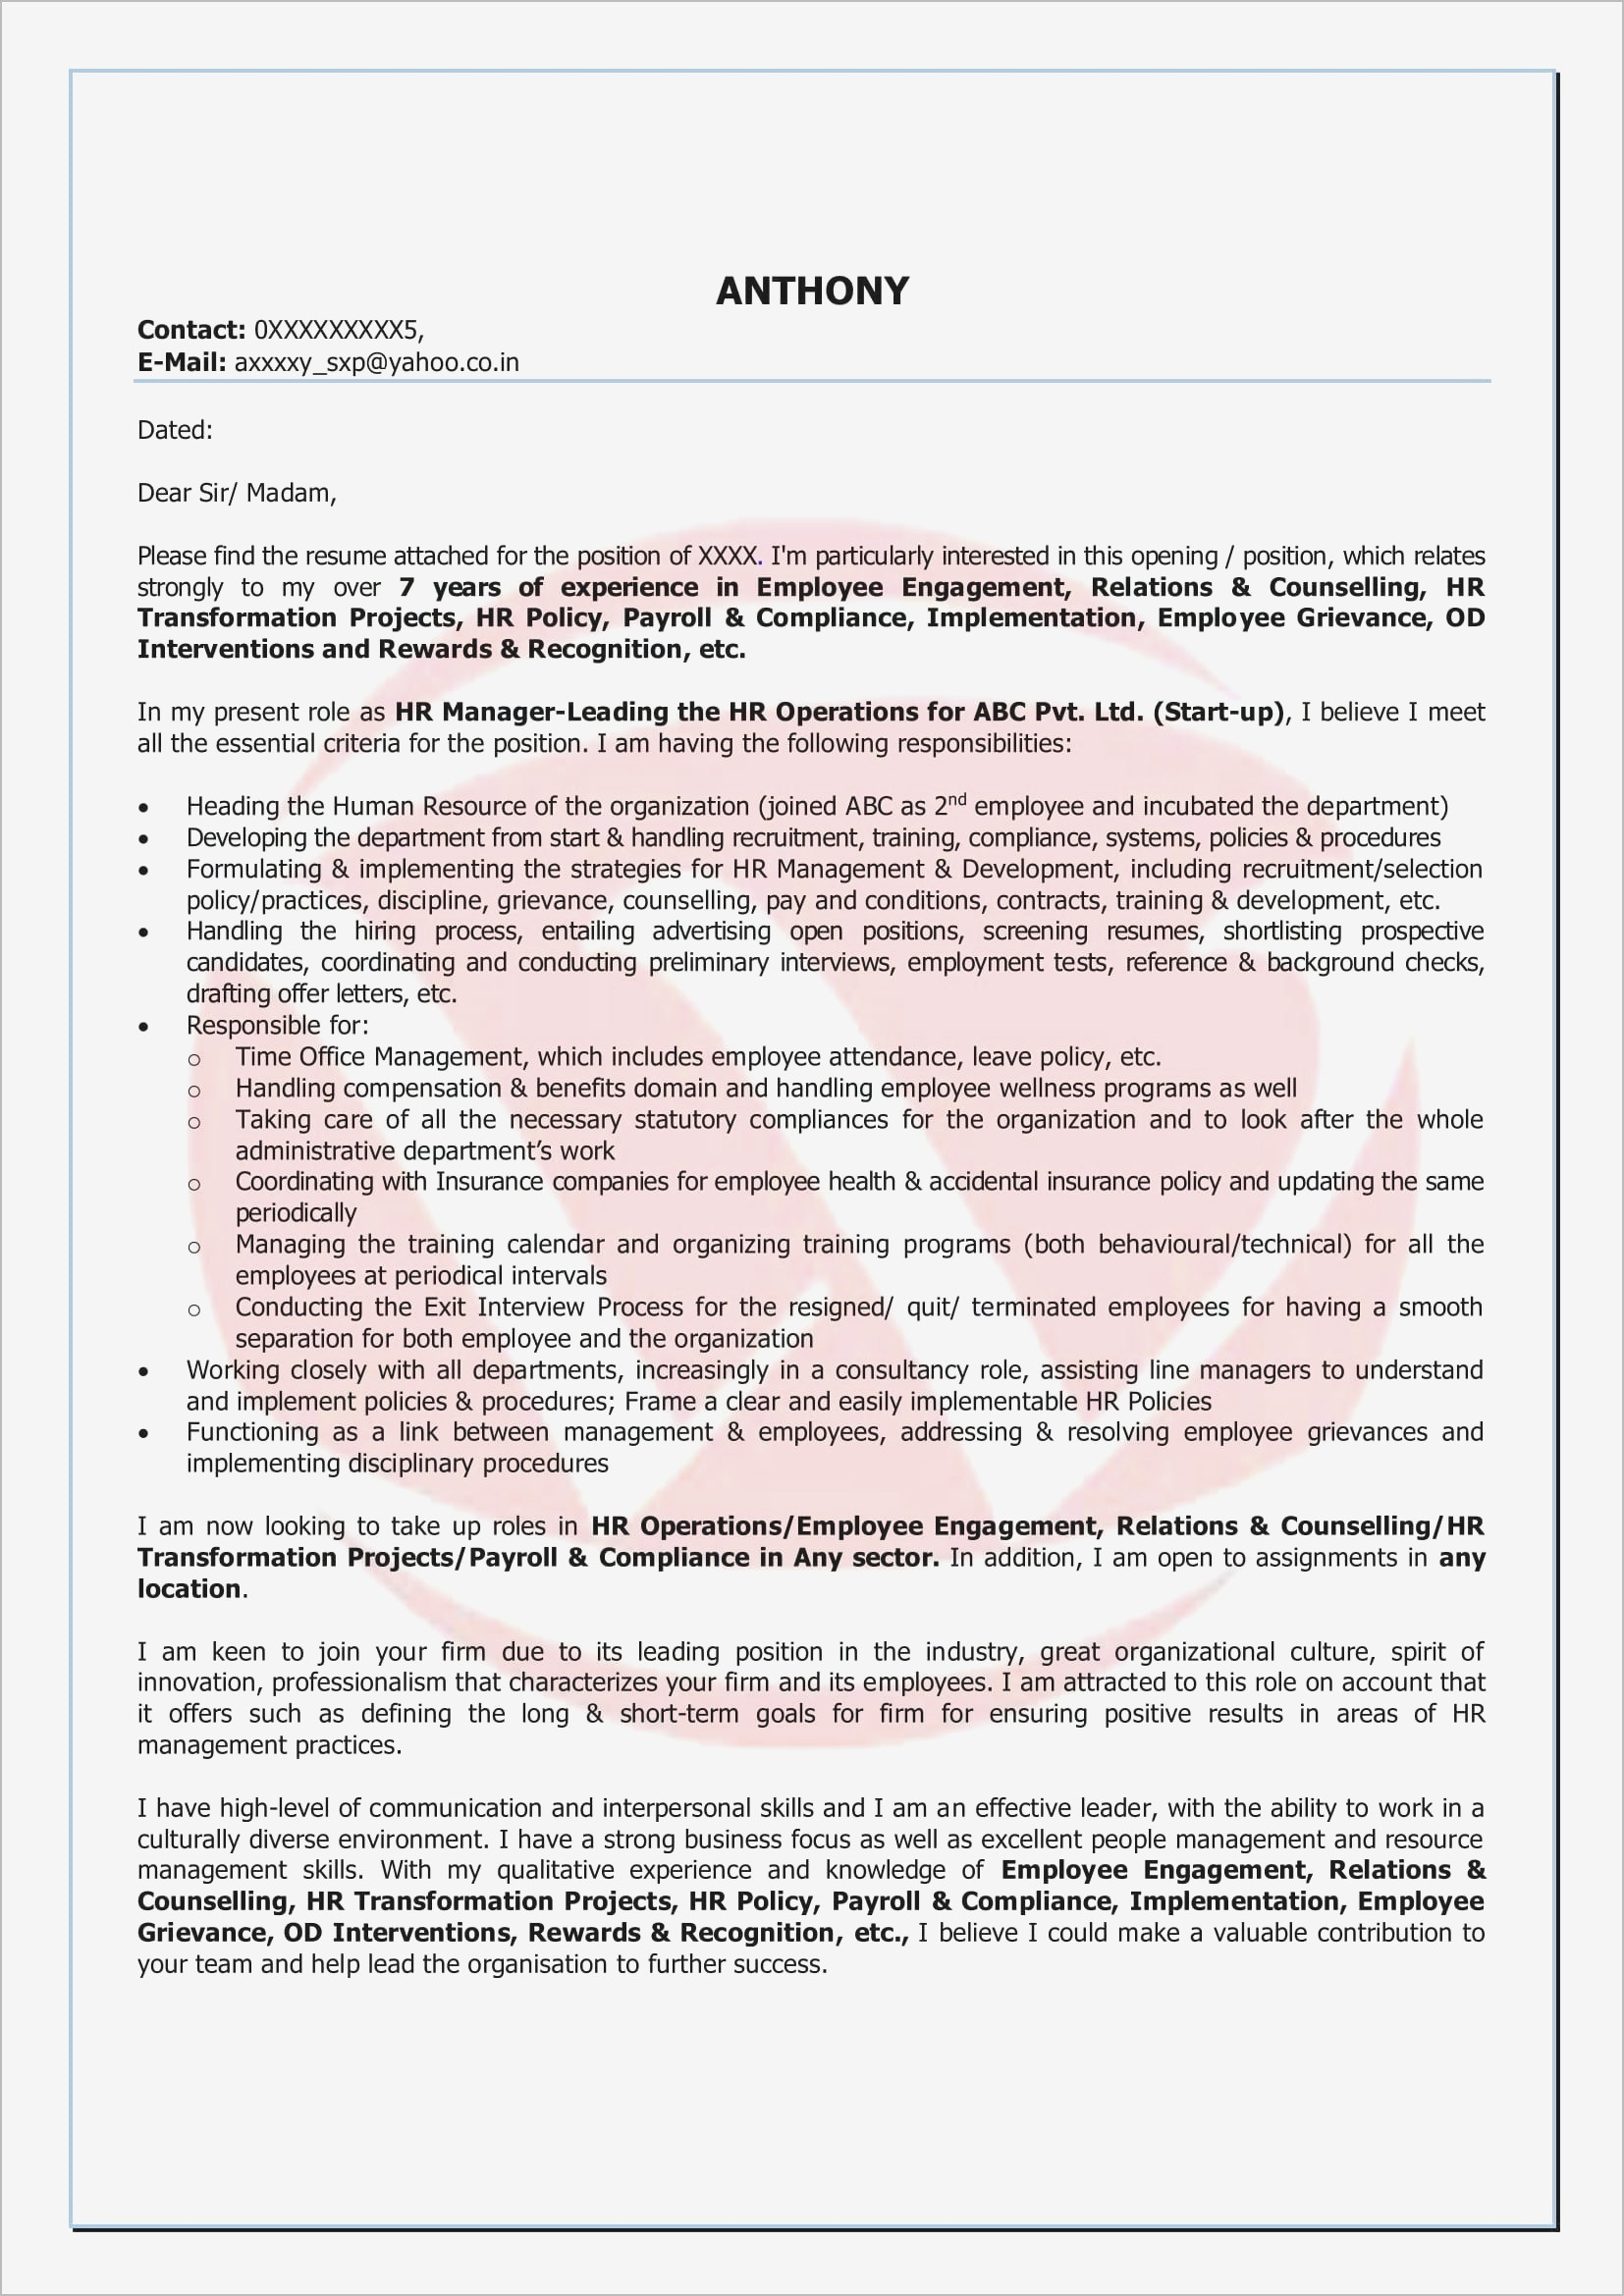 Letter Of Employment Template Word - Job Re Mendation Letter Inspirationa Letter Re Mendation Template